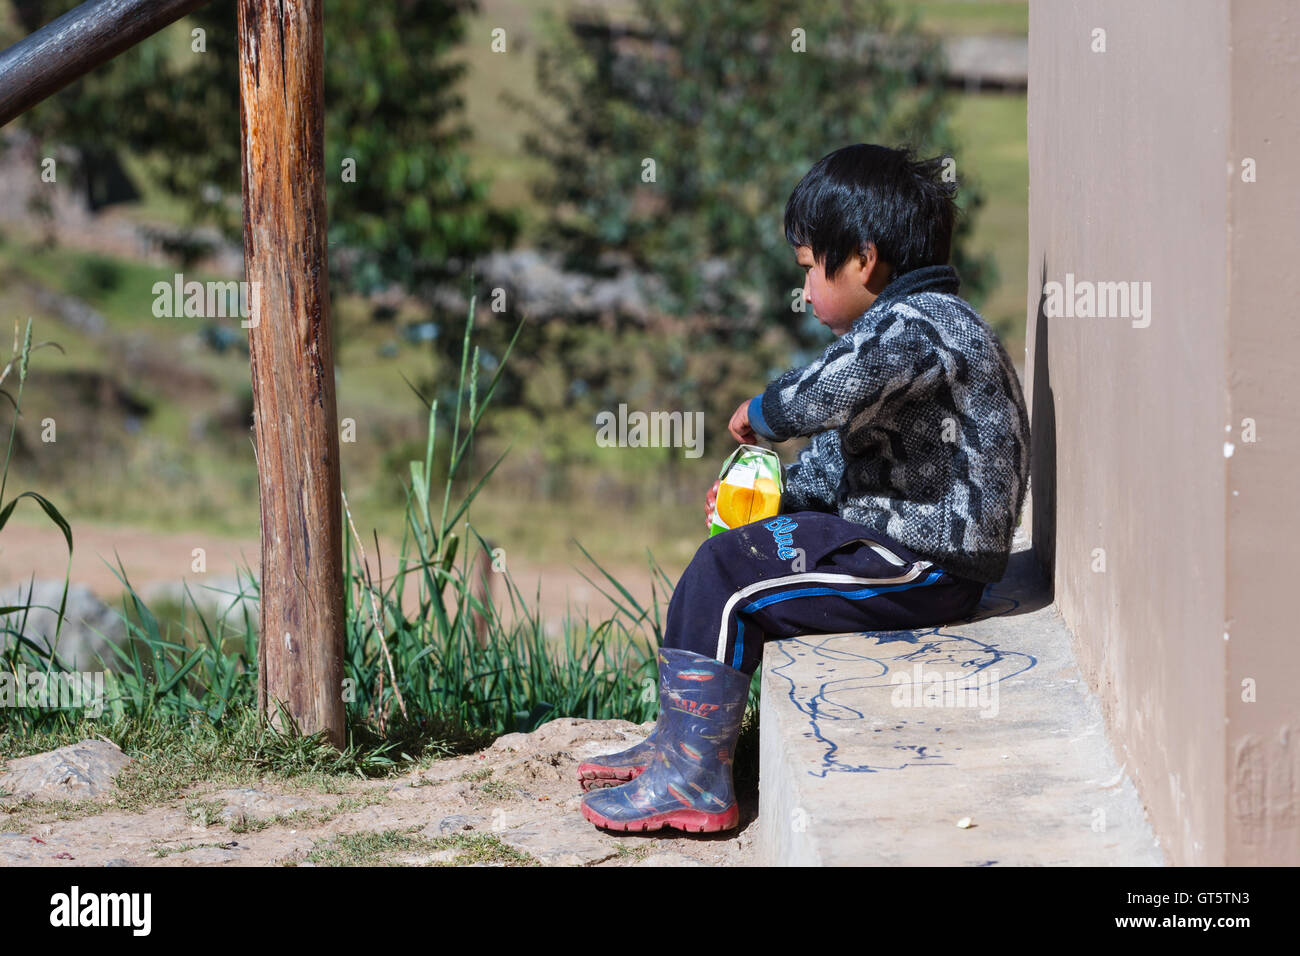 Chinchero Peru -May 18 : Young Andean boy with a large carton of fruit juice. May 18 2016, Chinchero Peru. - Stock Image